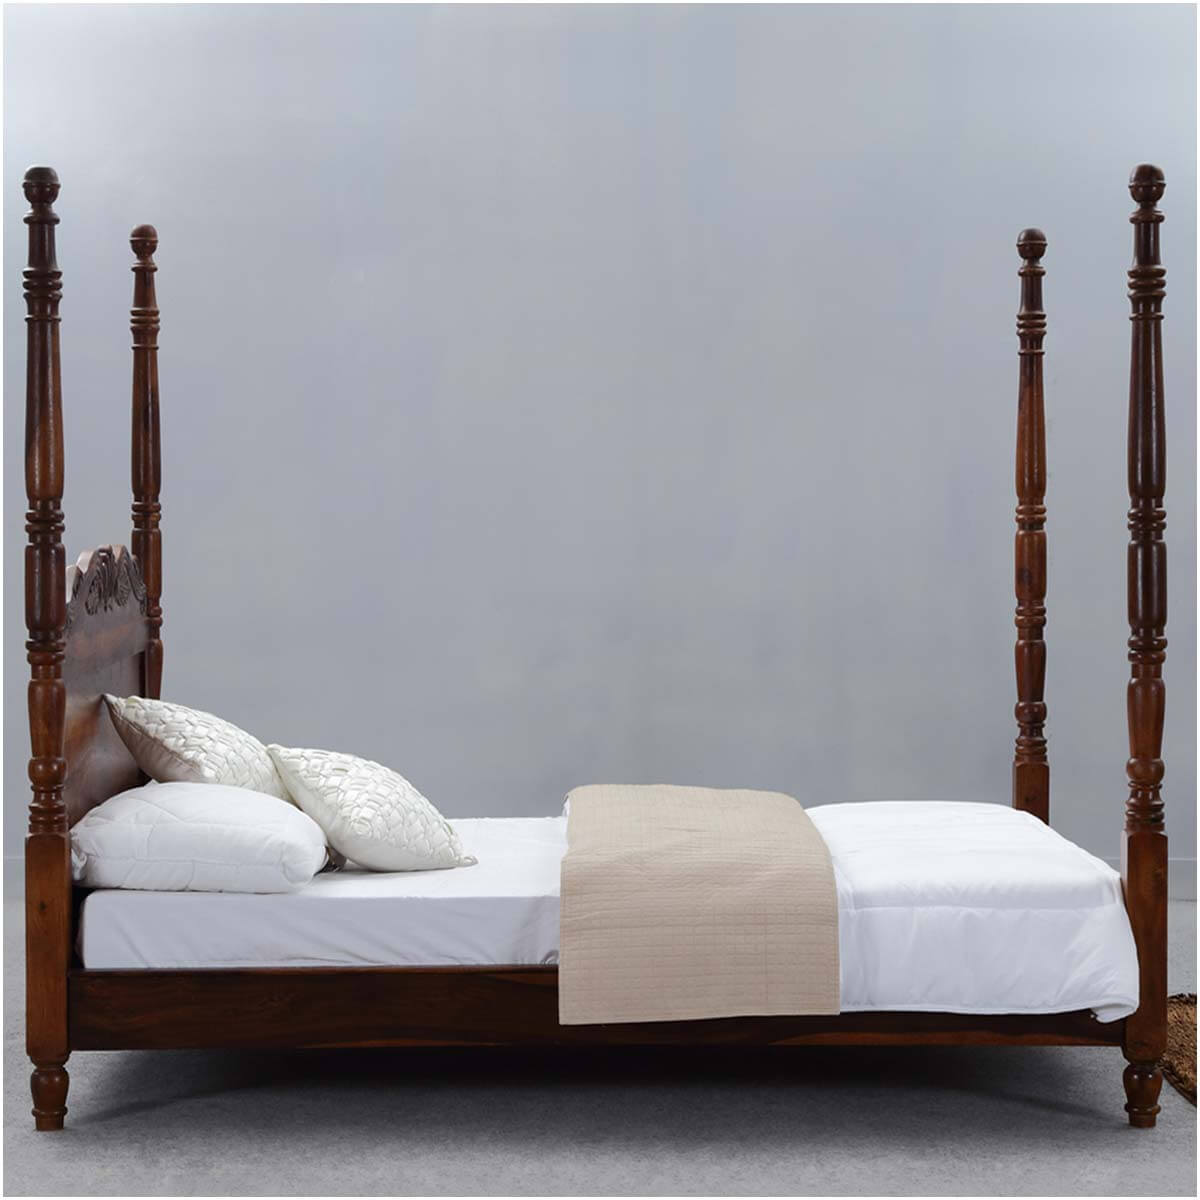 Queen size poster bed frame